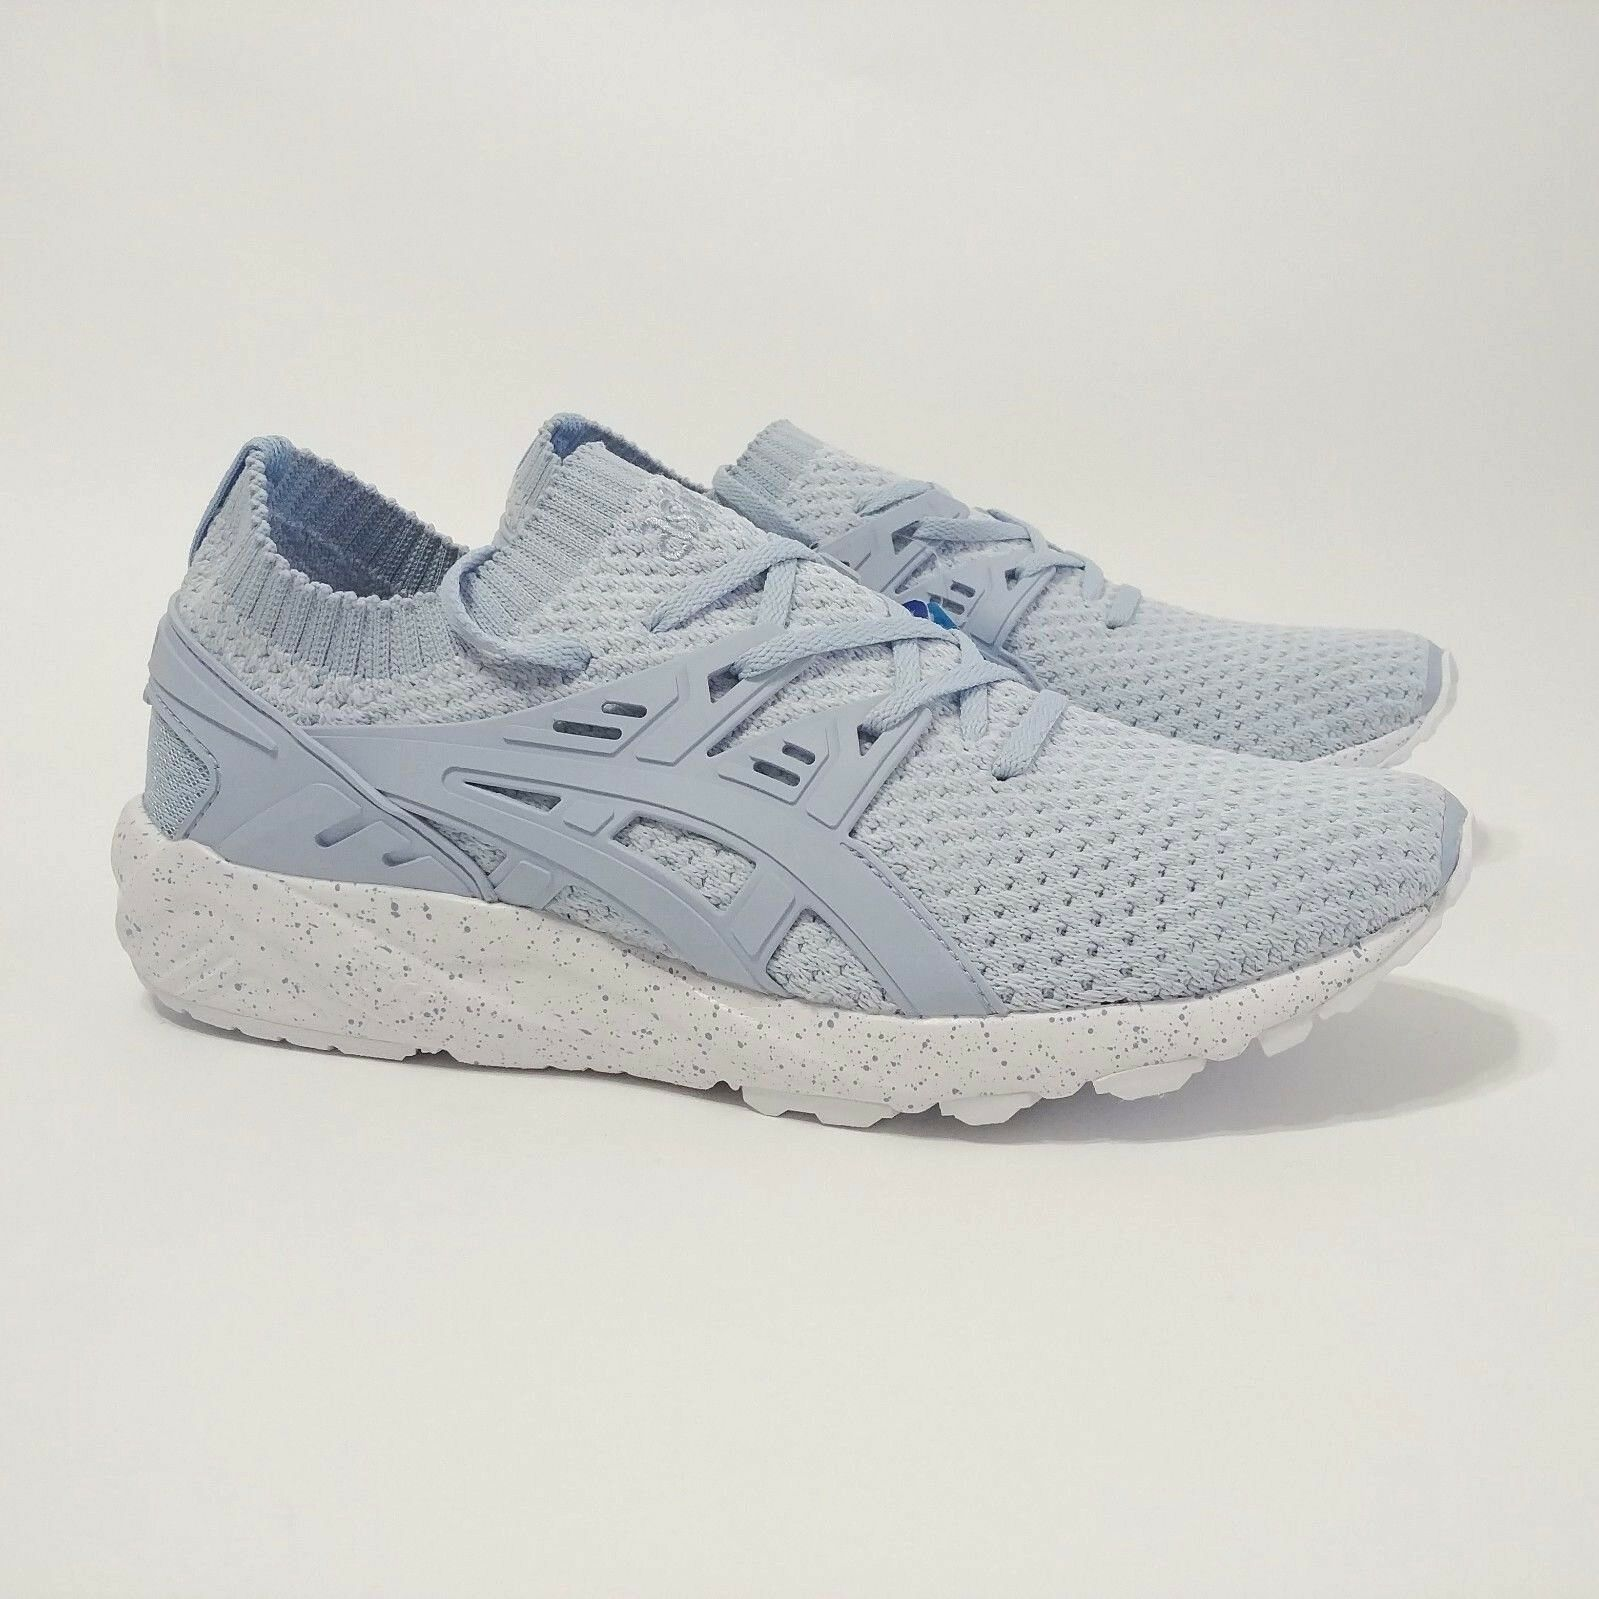 Asics Gel Kayano Knit Low Trainer Running Shoe Skyway Blue HN7Q8 Comfortable The latest discount shoes for men and women